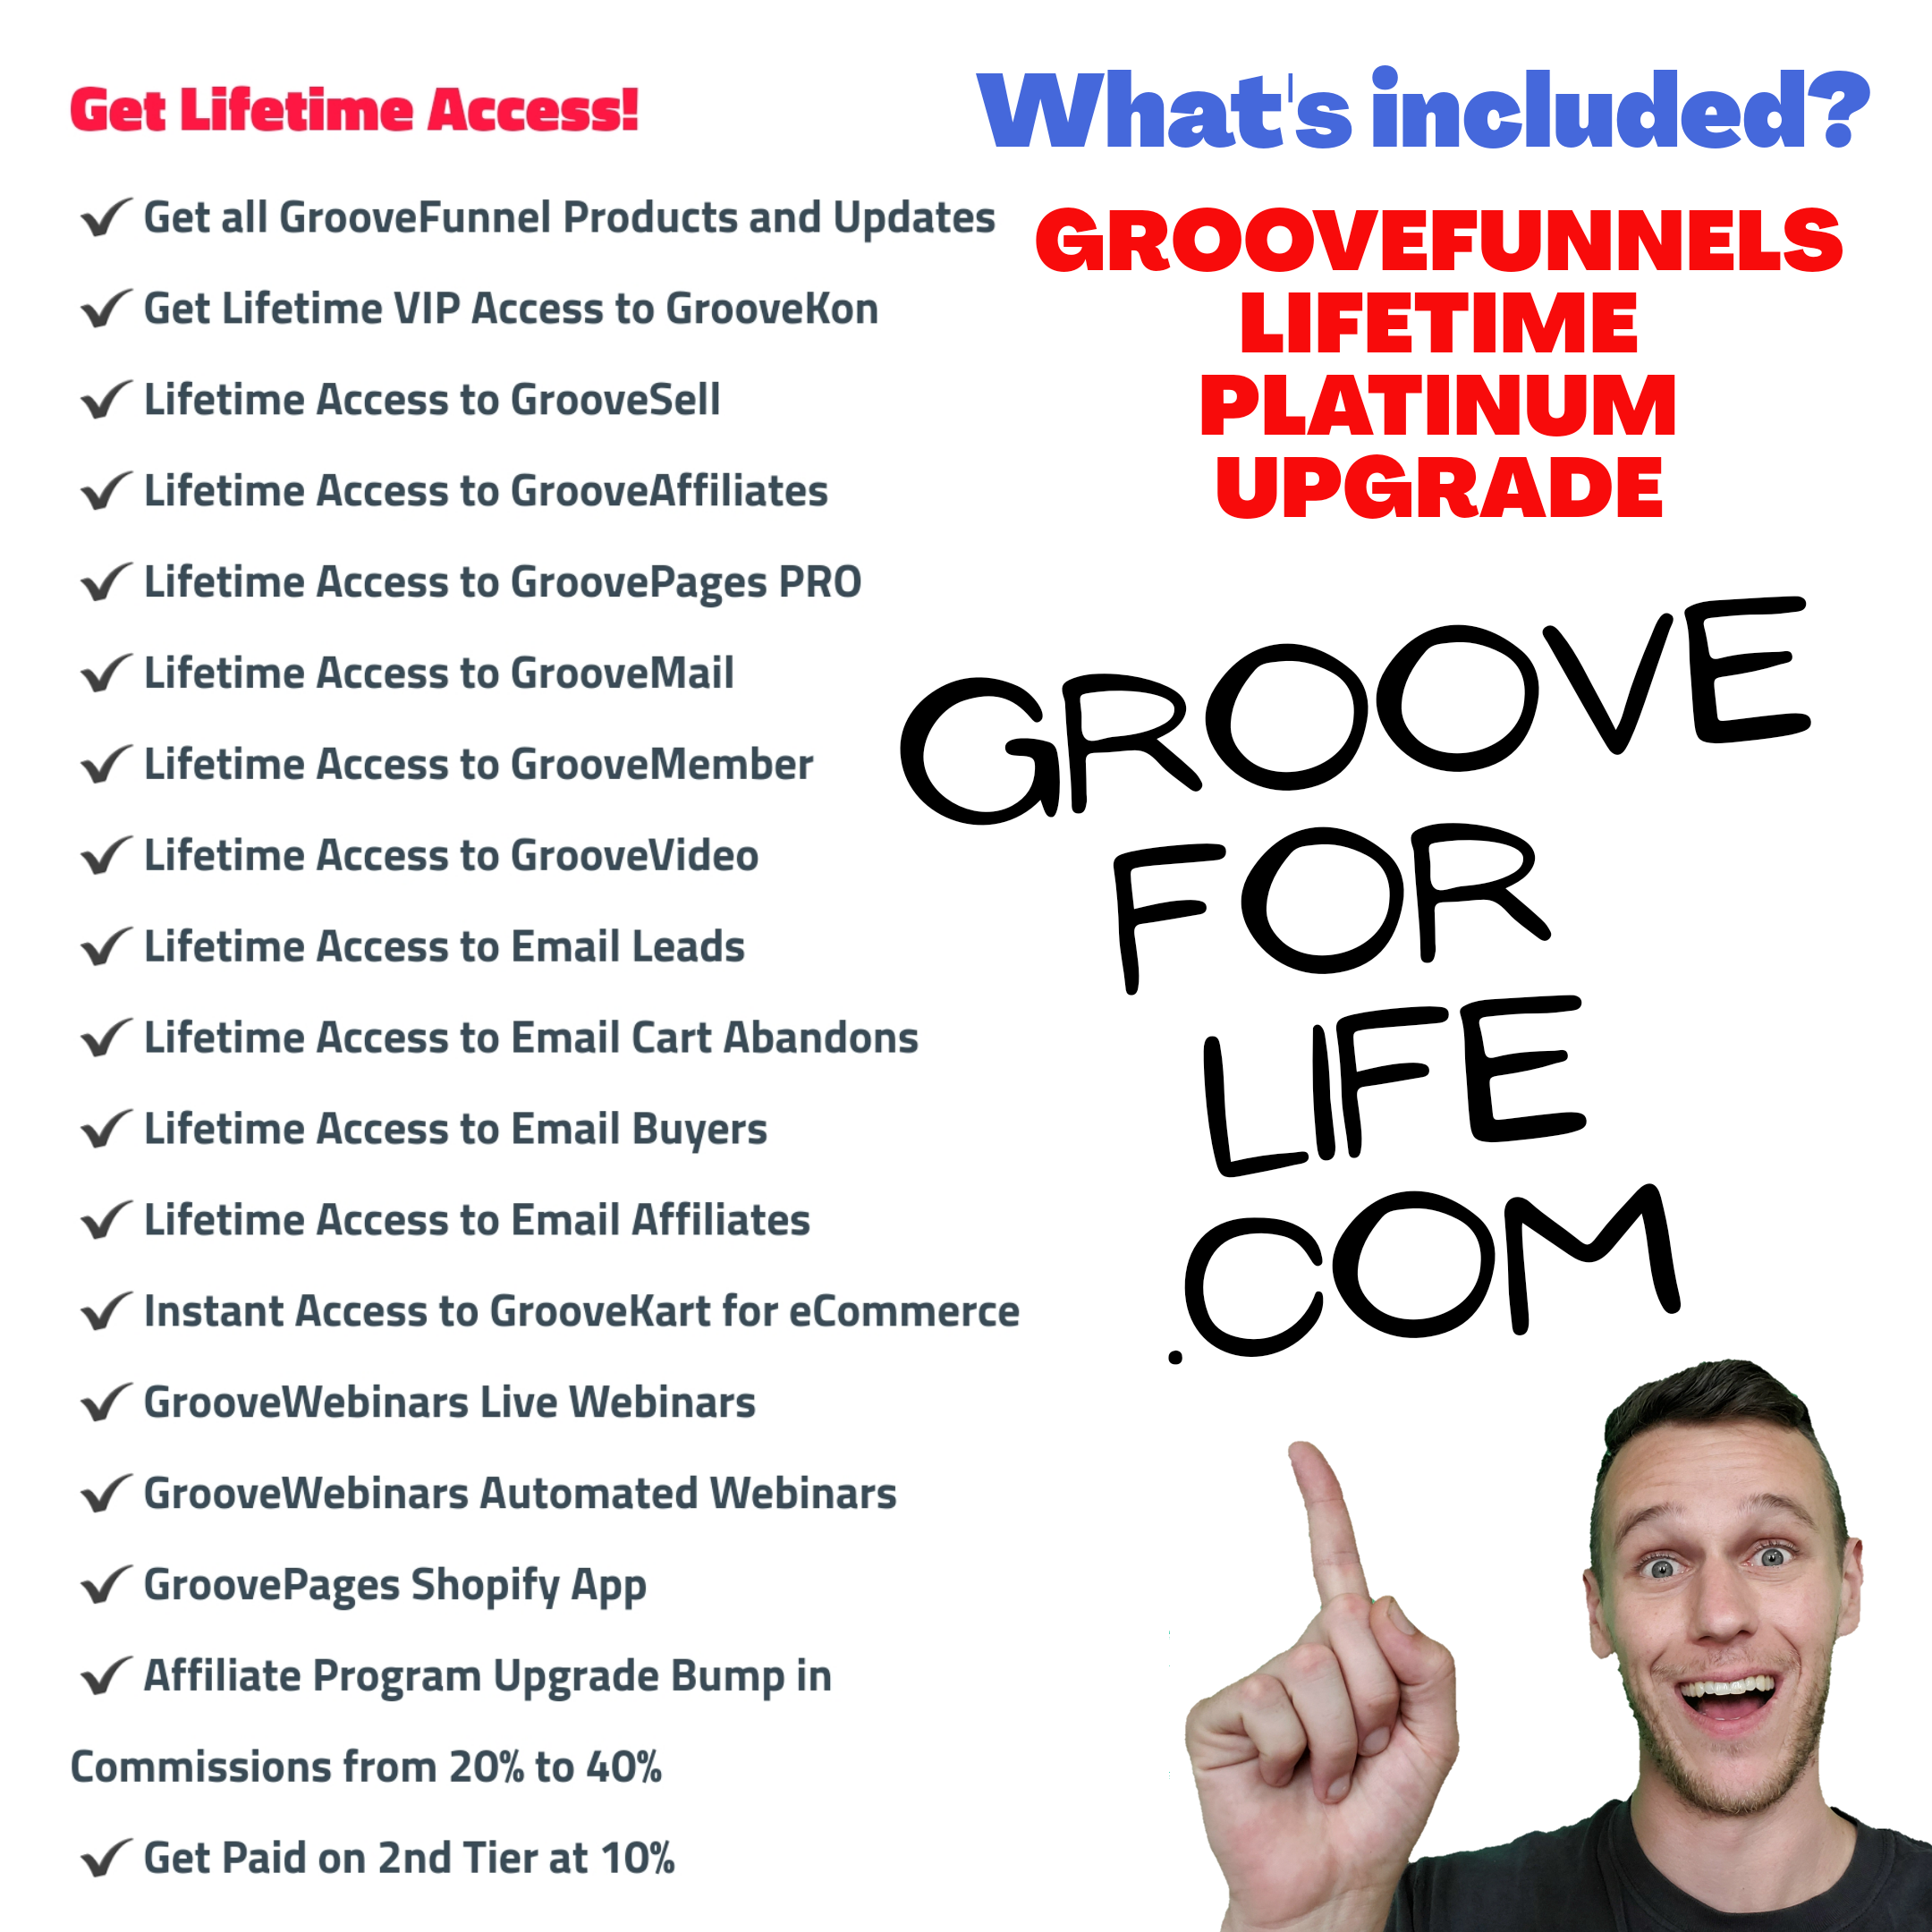 what comes with groovefunnels upgrade, what comes with groovefunnels pro, what's included with groovefunnels platinum upgrade, groovefunnels upgrade